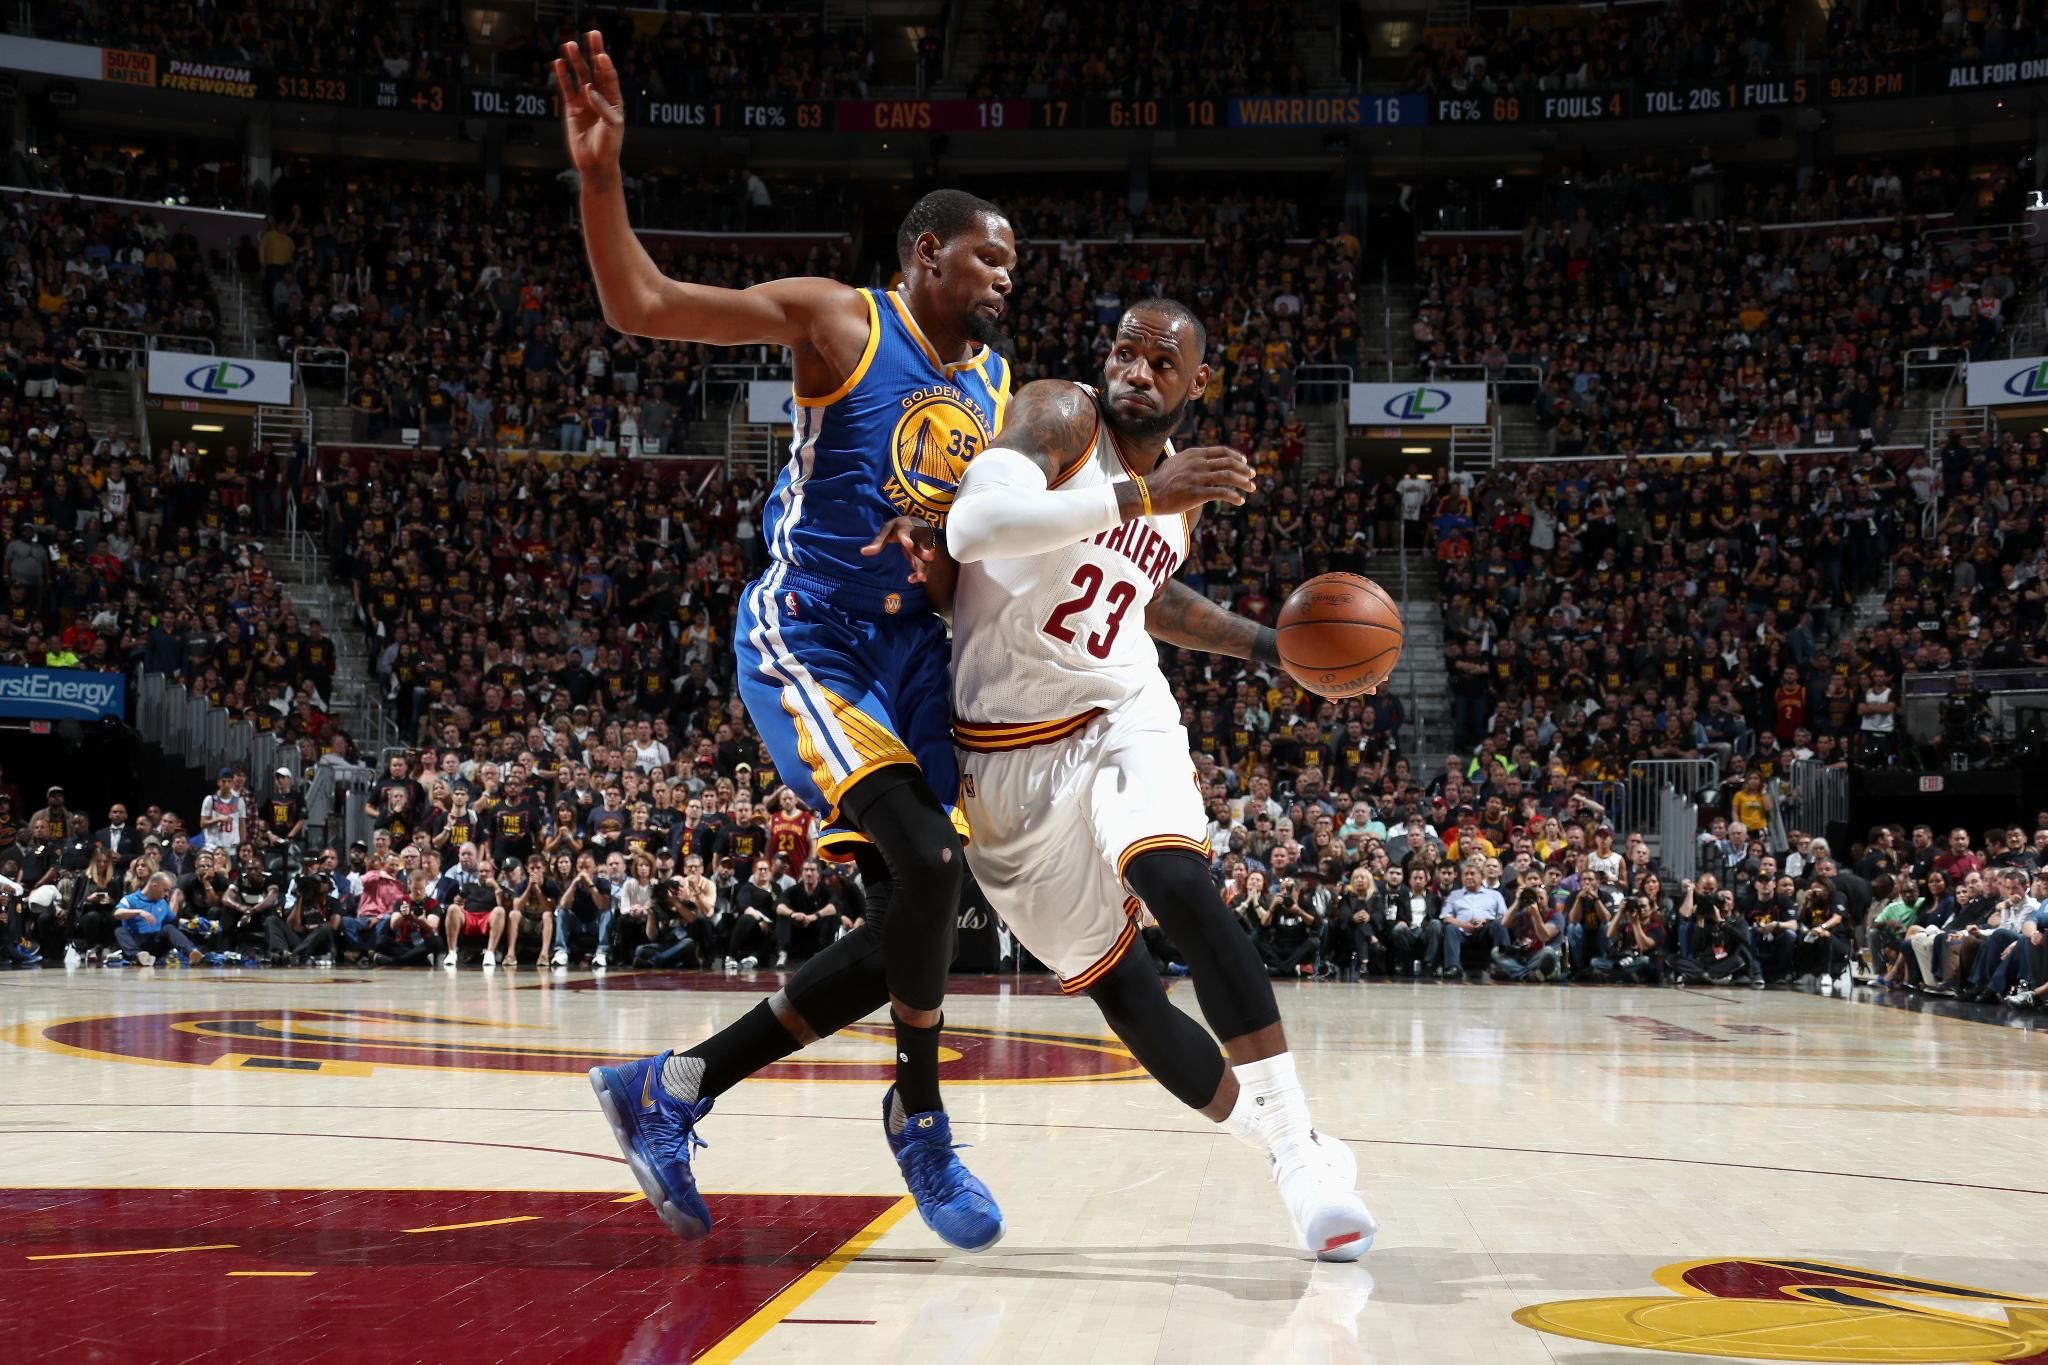 Warriors Stun Cavaliers in Game 3 take commanding 3-0 lead in NBA Finals-  Warriors stormed back in the final minutes to beat Cavaliers 118-113 in Game 3 on June 7.  #KevinDurant combined and #KlayThompson paced the Warriors with 31 and 30 points, while #StephenCurry added 26 points. Warriors remain undefeated in postseason play and now possess the longest postseason winning streak in the history of the four major American sports.